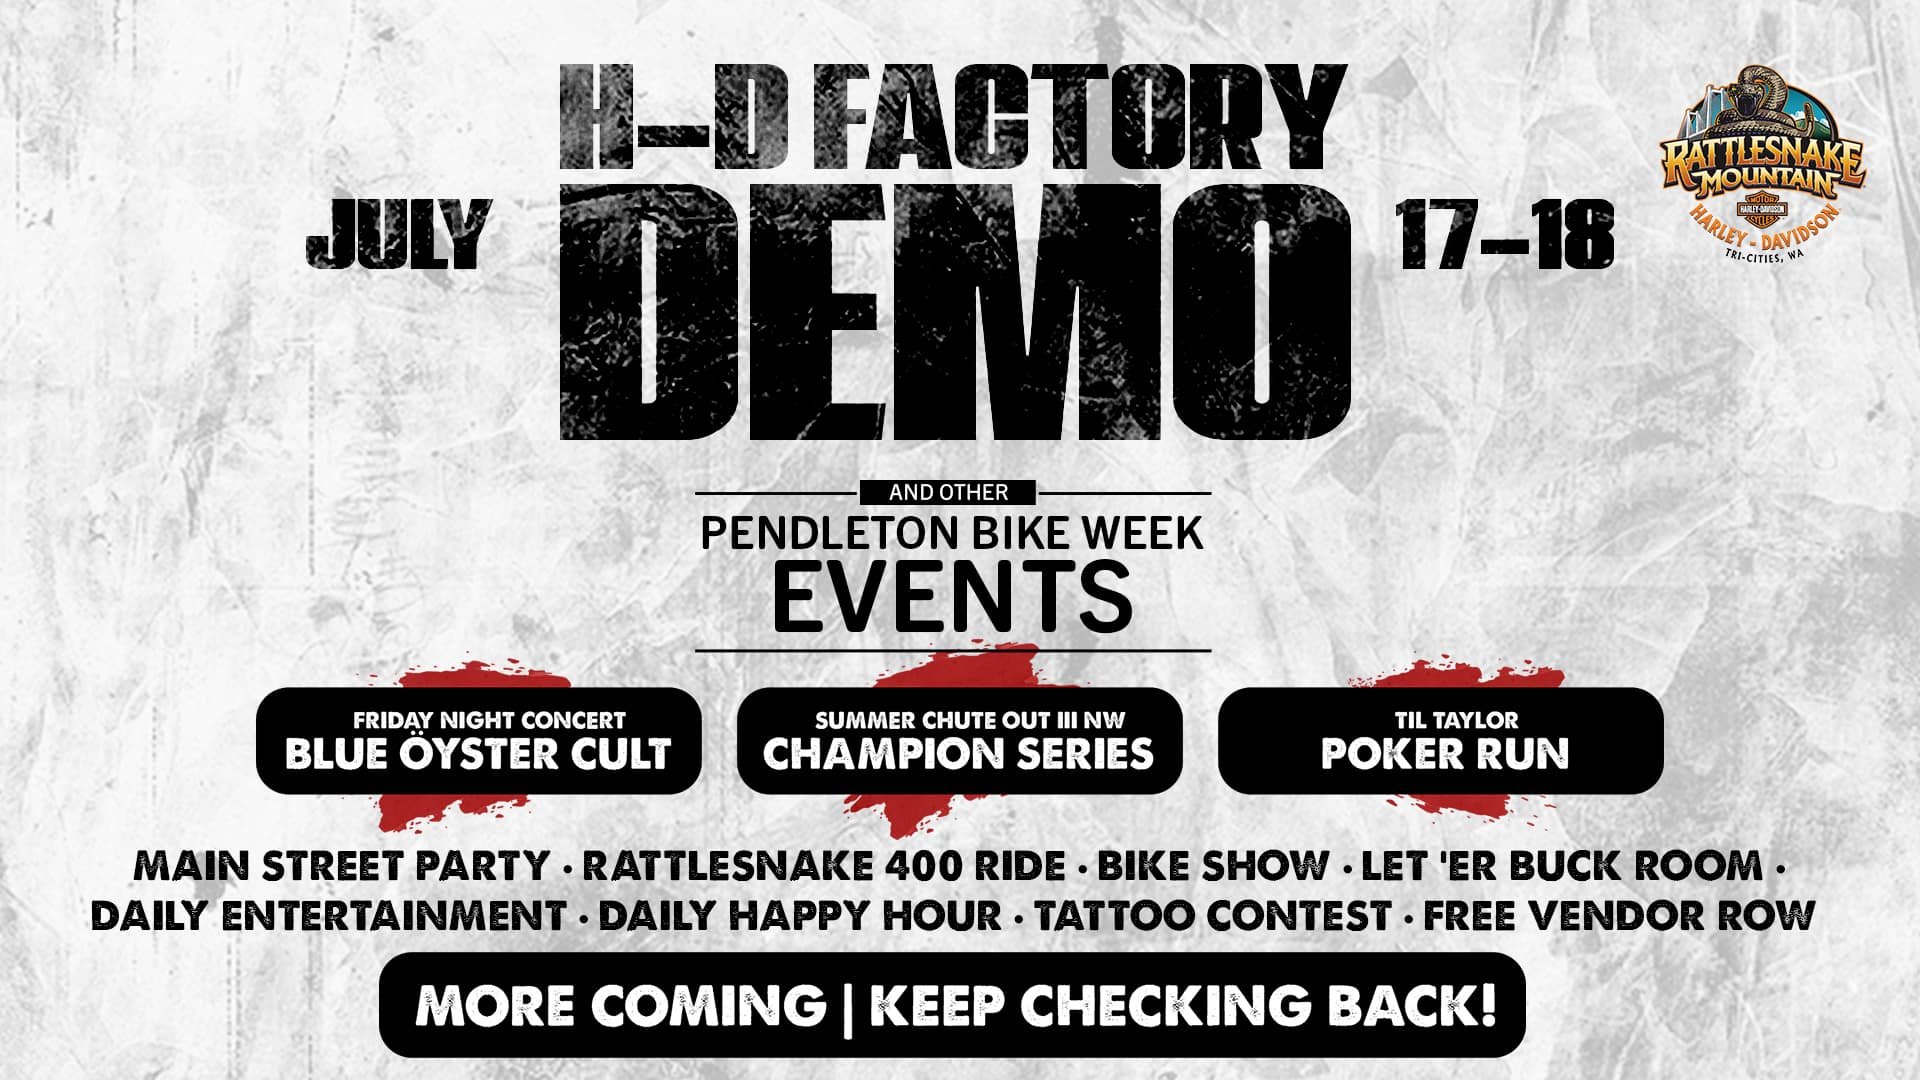 Pendleton Bike Week